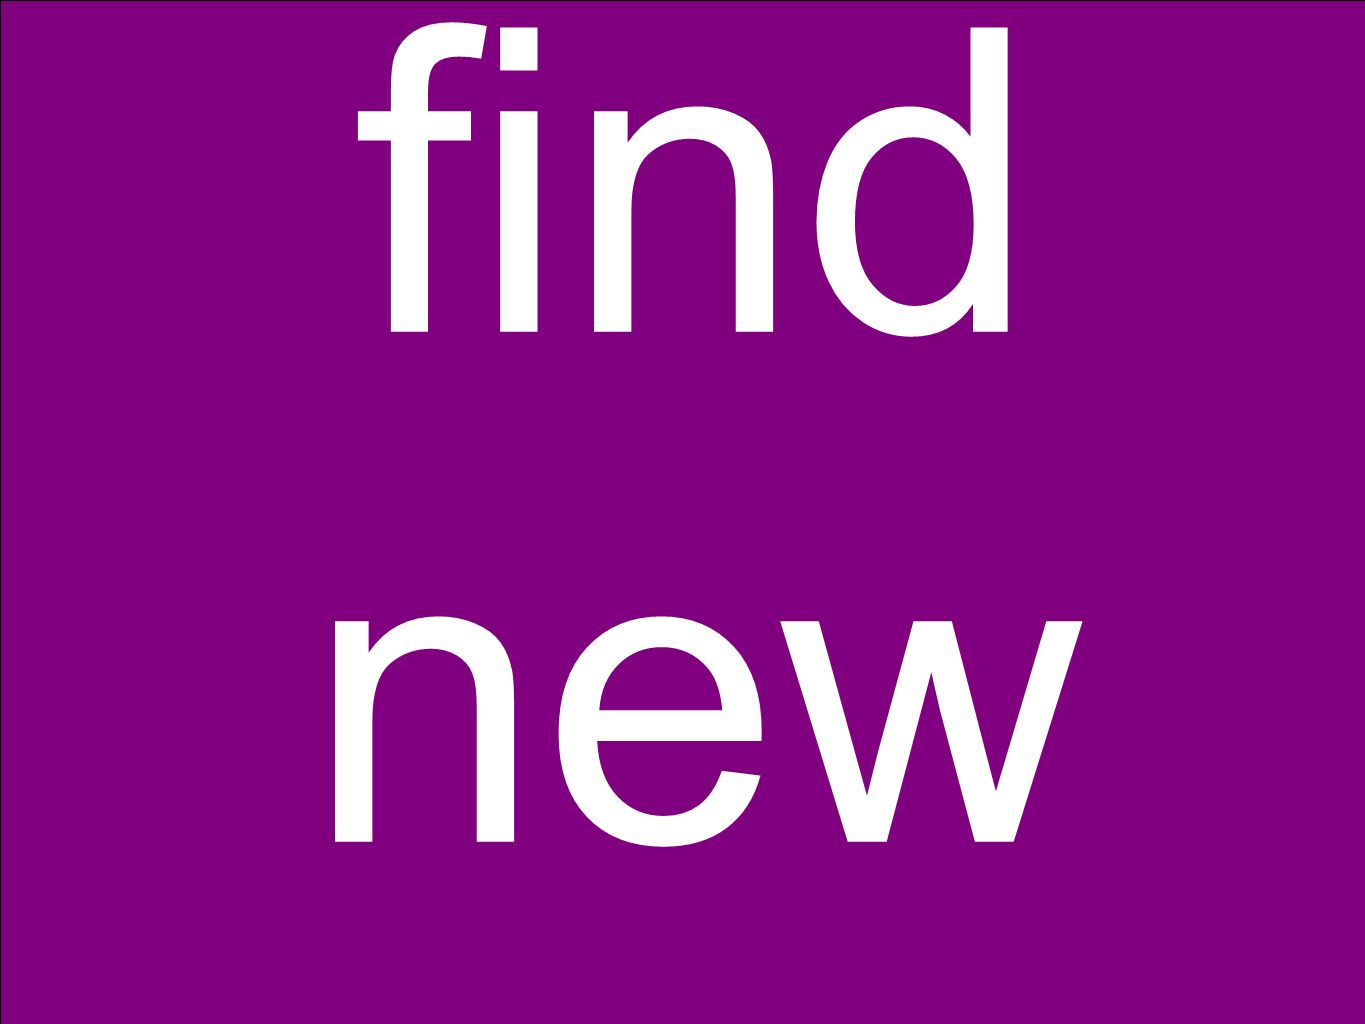 find new